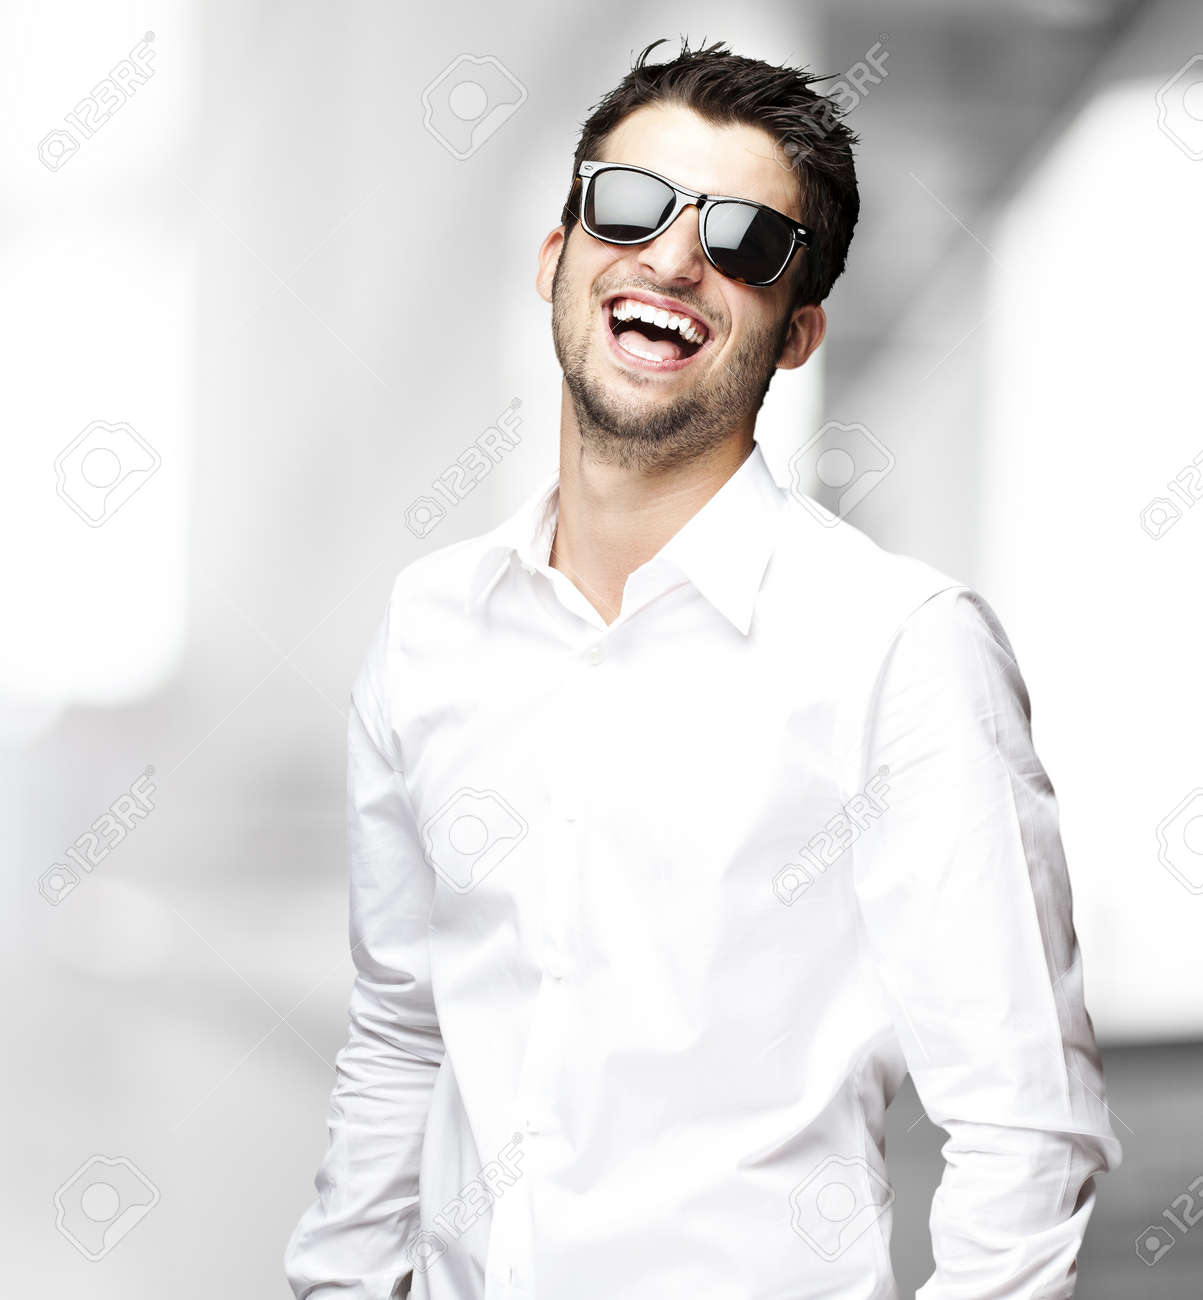 portrait of handsome young man smiling indoor Stock Photo - 11507036